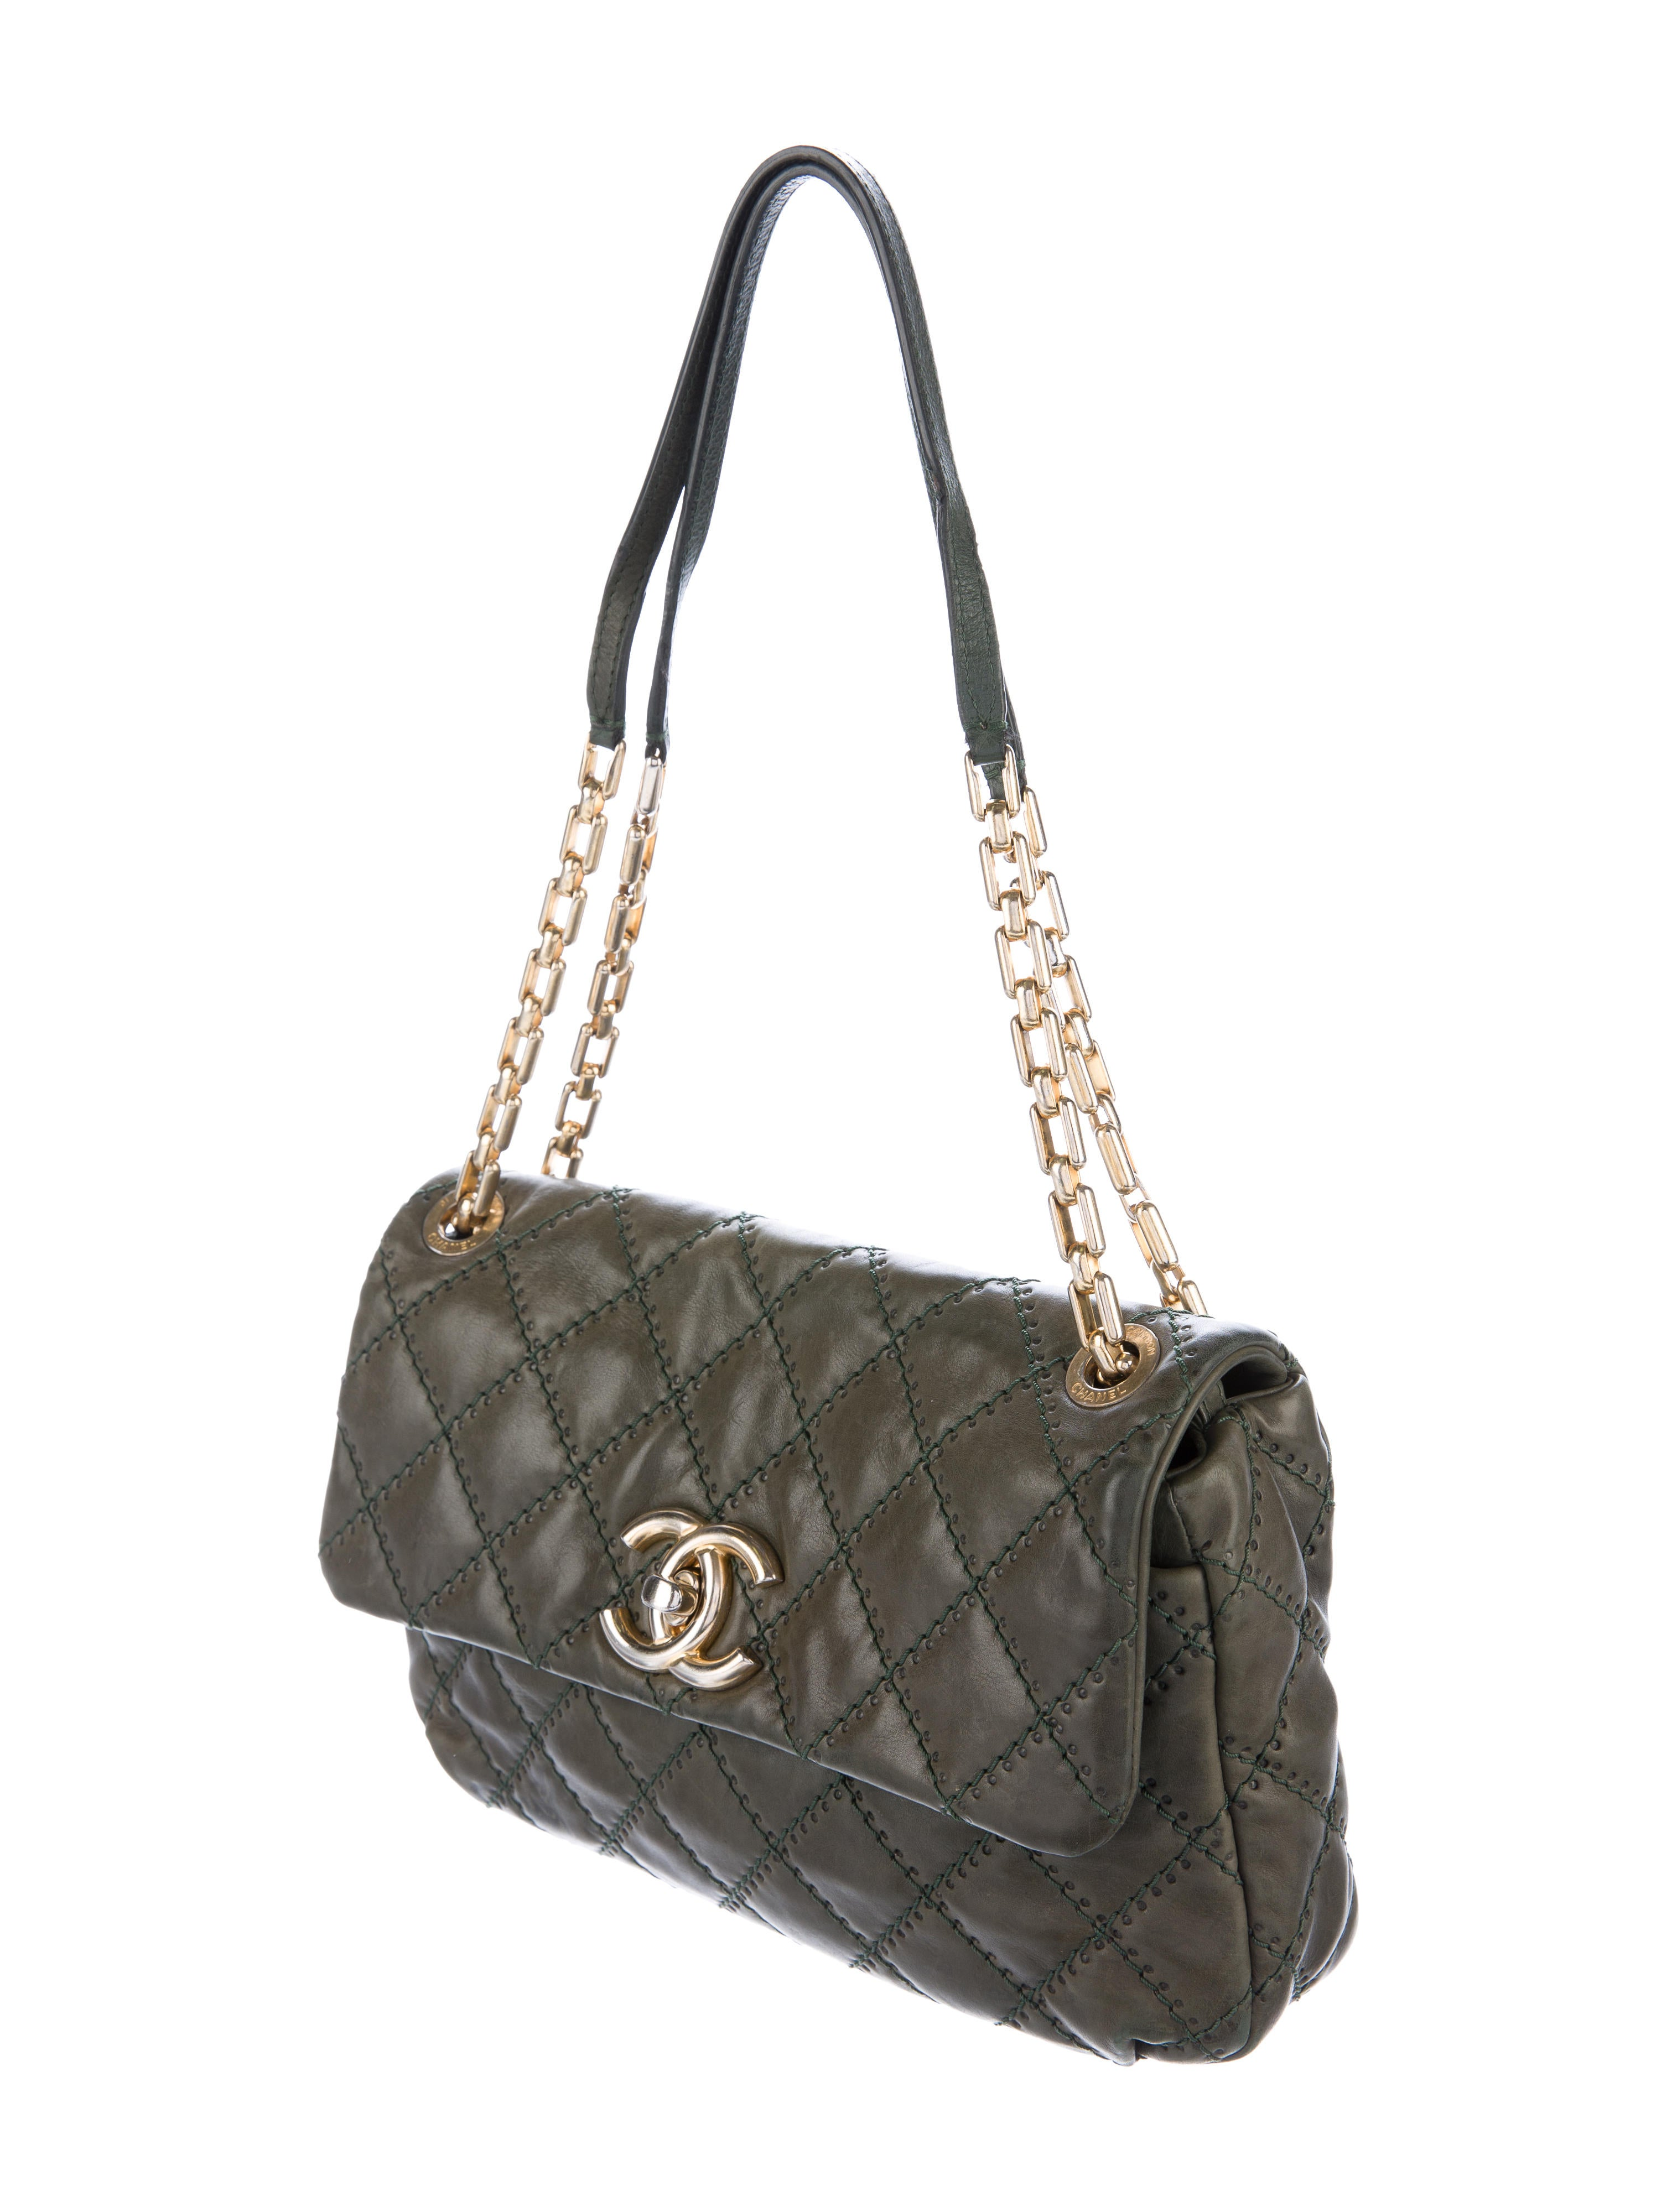 600874525224 Chanel Retro Chain Flap Bag | Stanford Center for Opportunity Policy ...